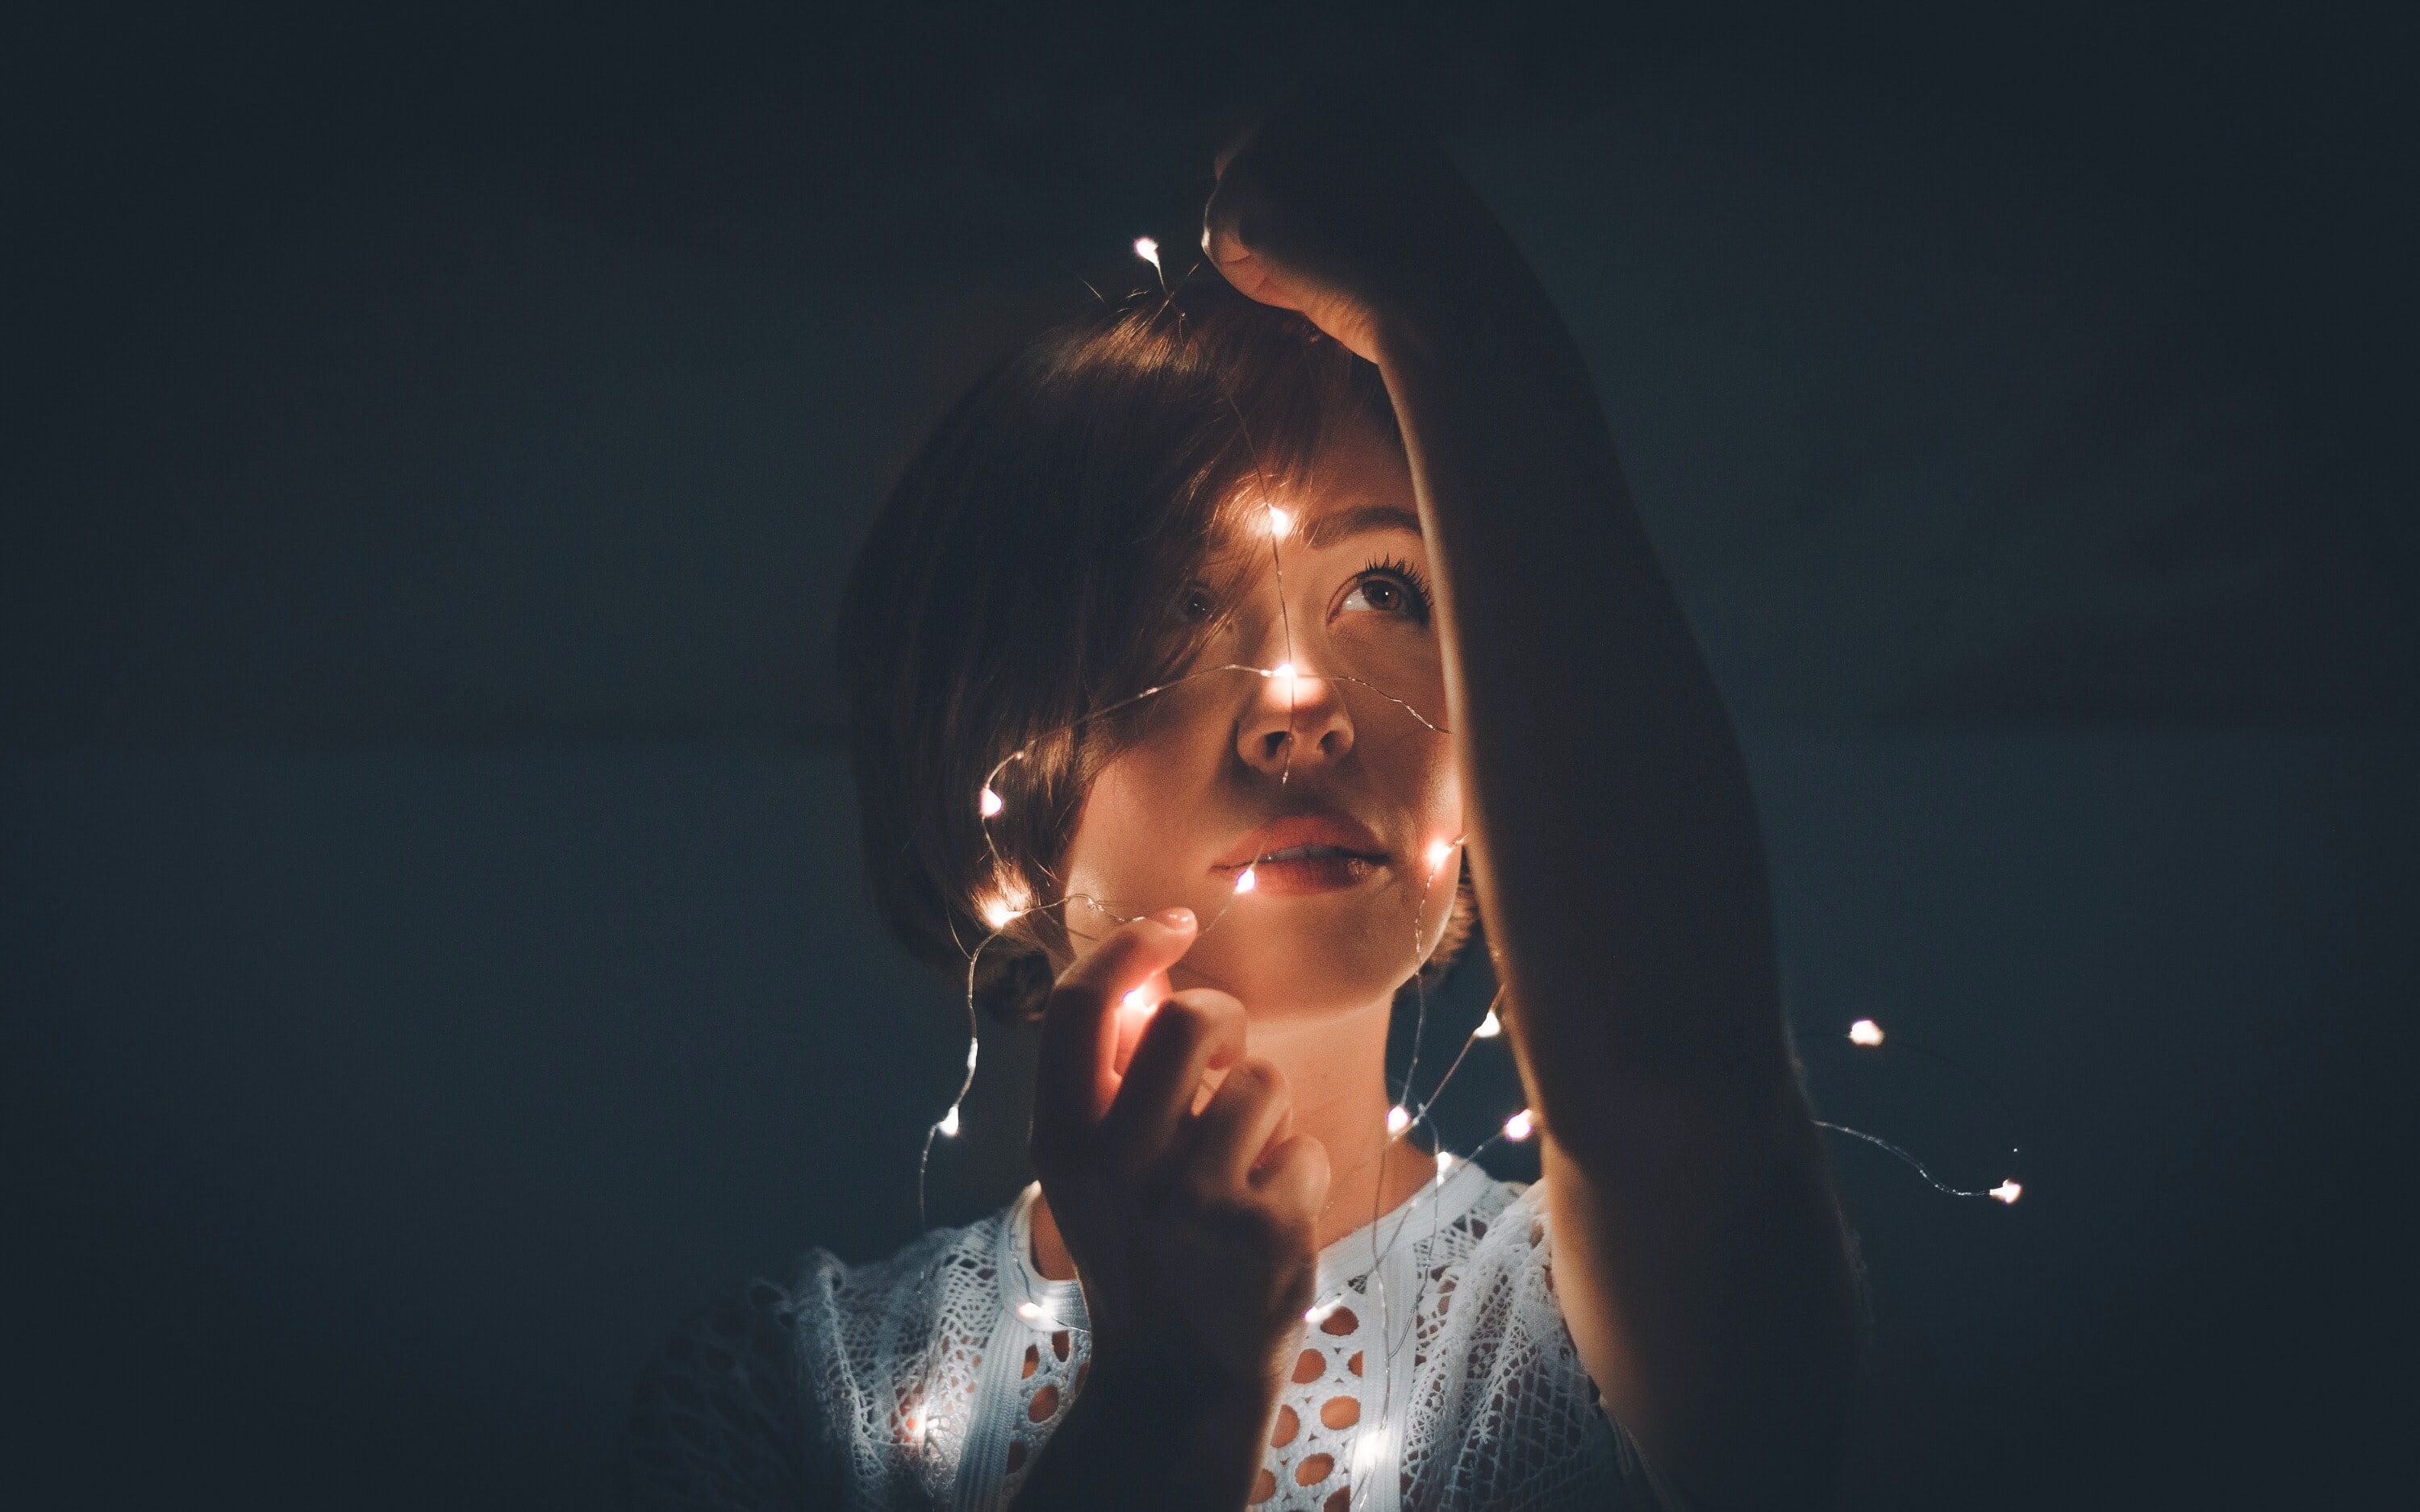 woman holding light string in a dark room